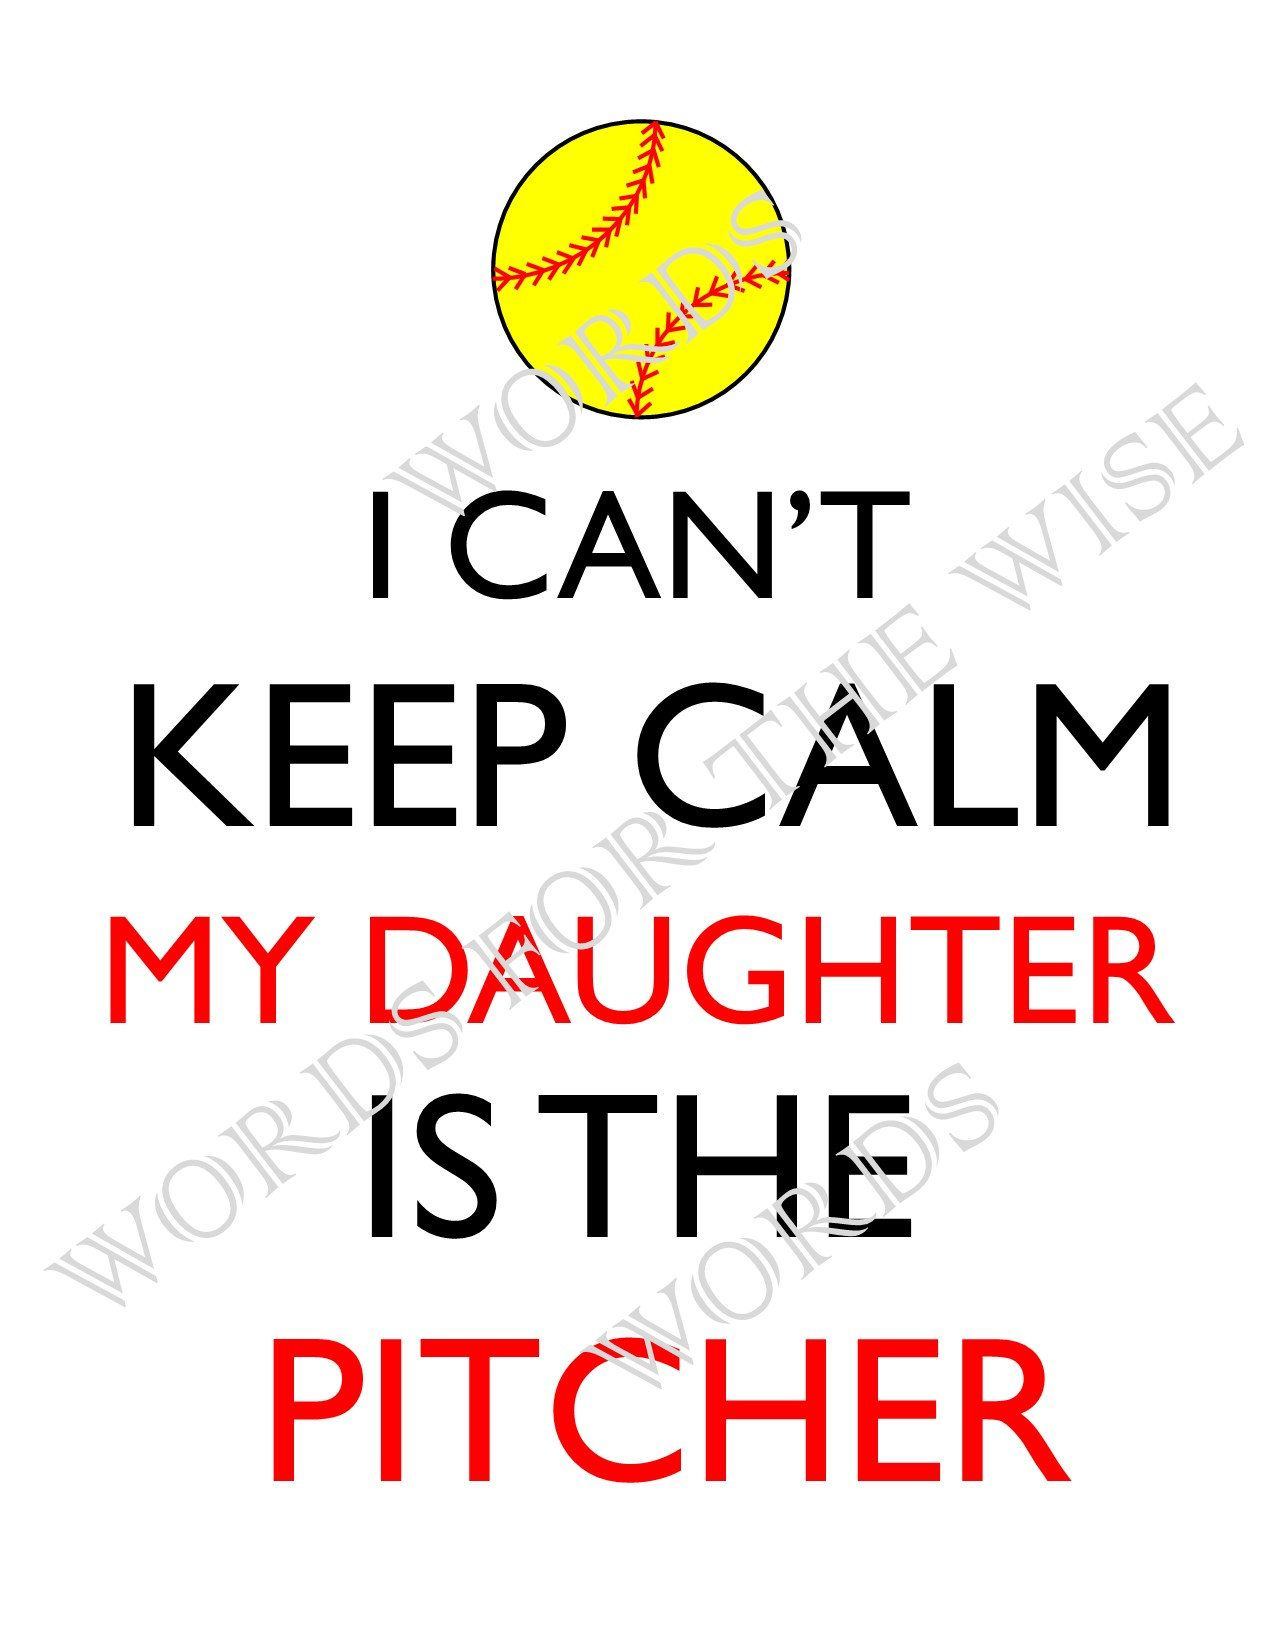 I Can't Keep Calm, Daughter is the Pitcher- Softball Mom, Softball Dad,  digital design DIY t-shirt transfer iron on, print instant download